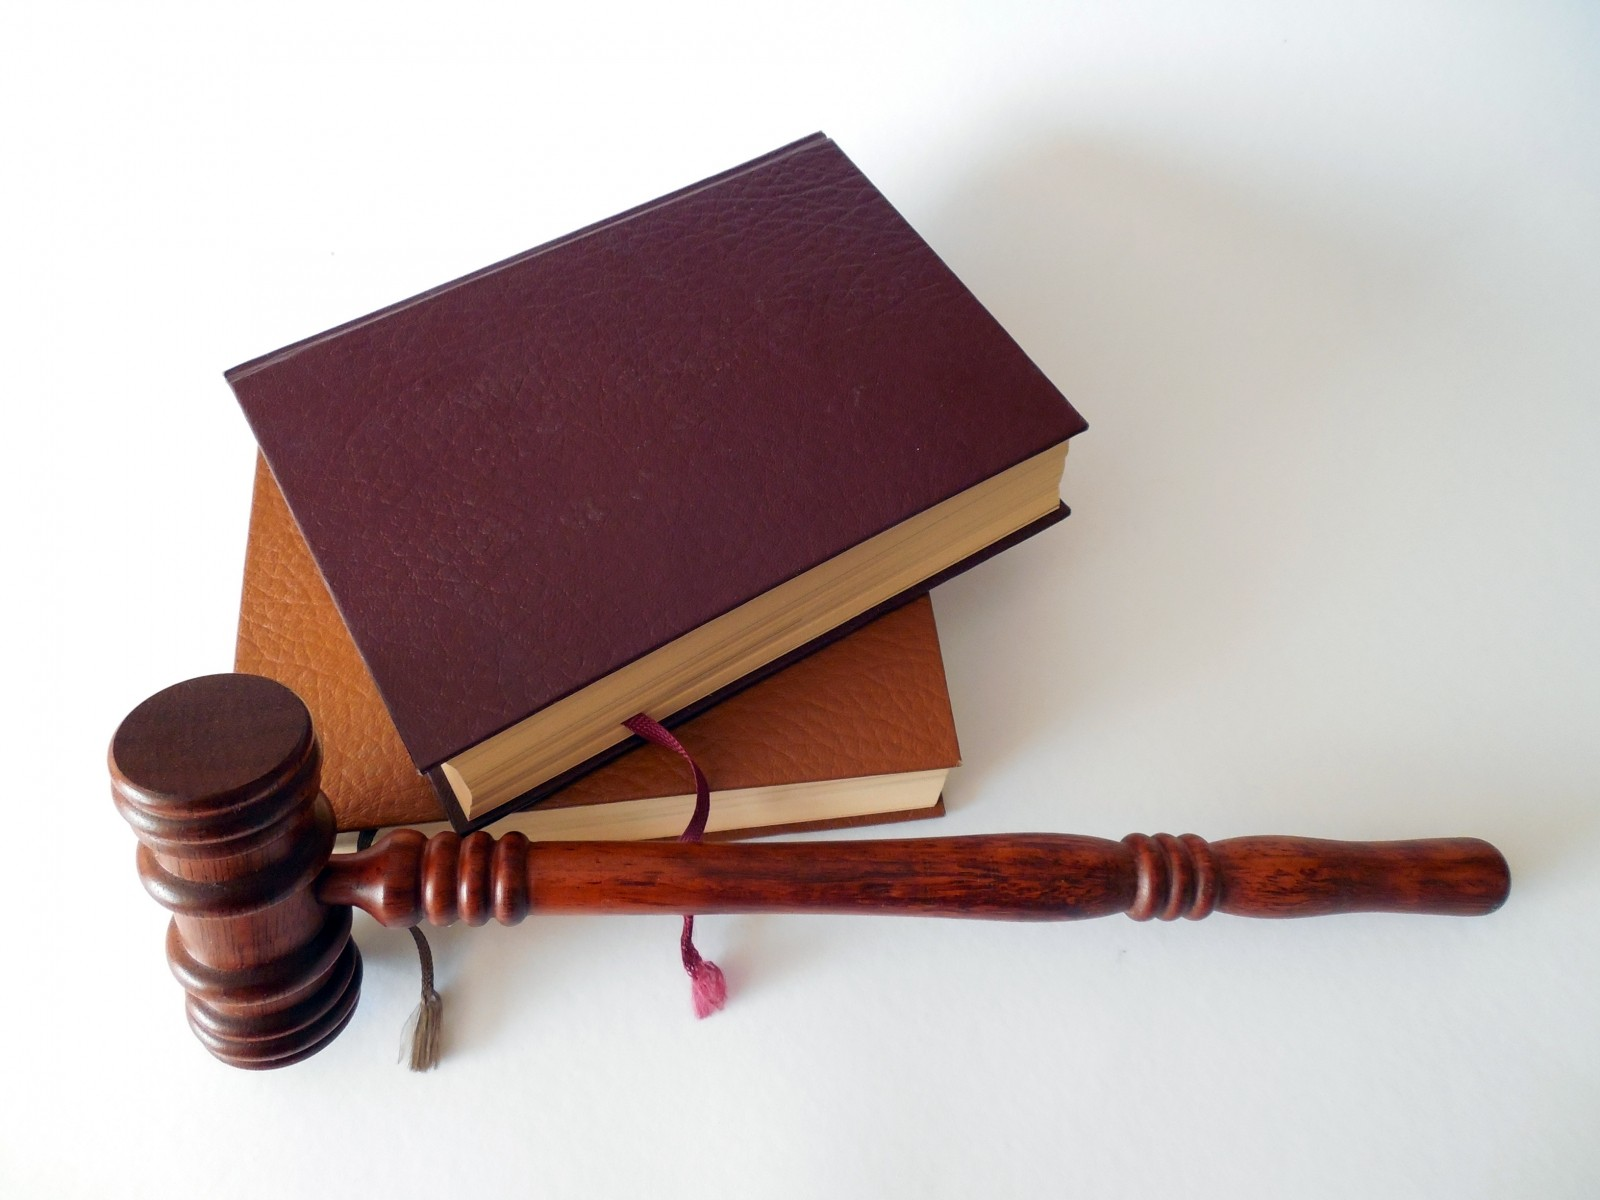 hammer-books-law-court-lawyer-paragraphs-rule-4